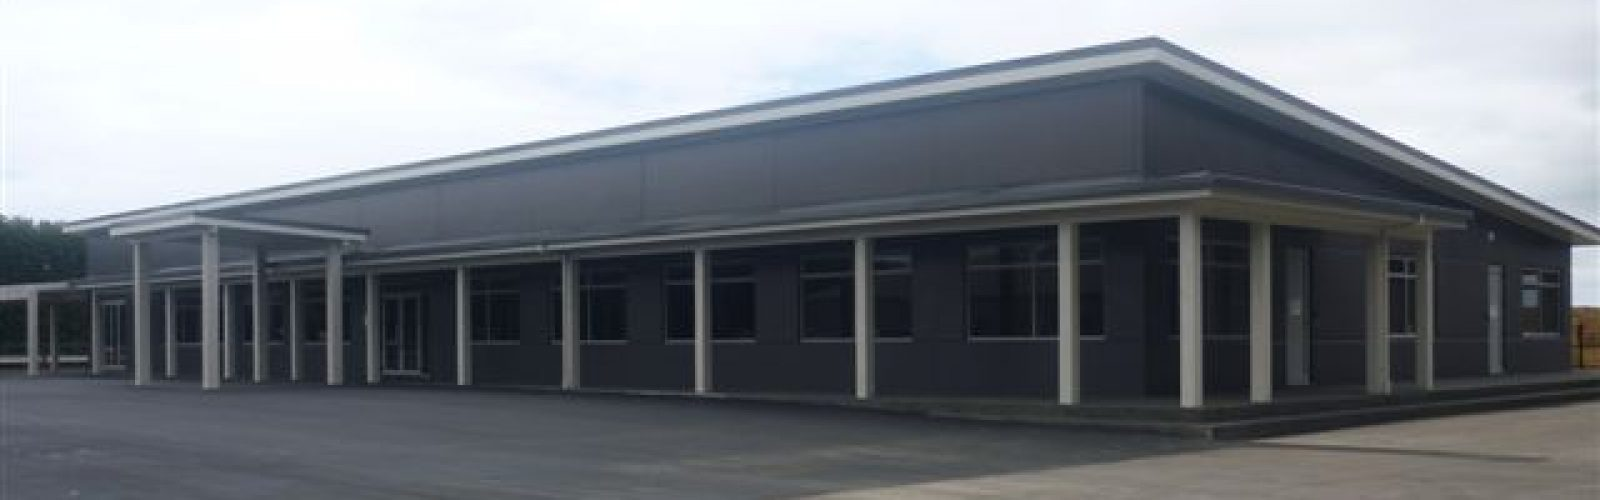 Turners & Growers New Office Building - Header Image